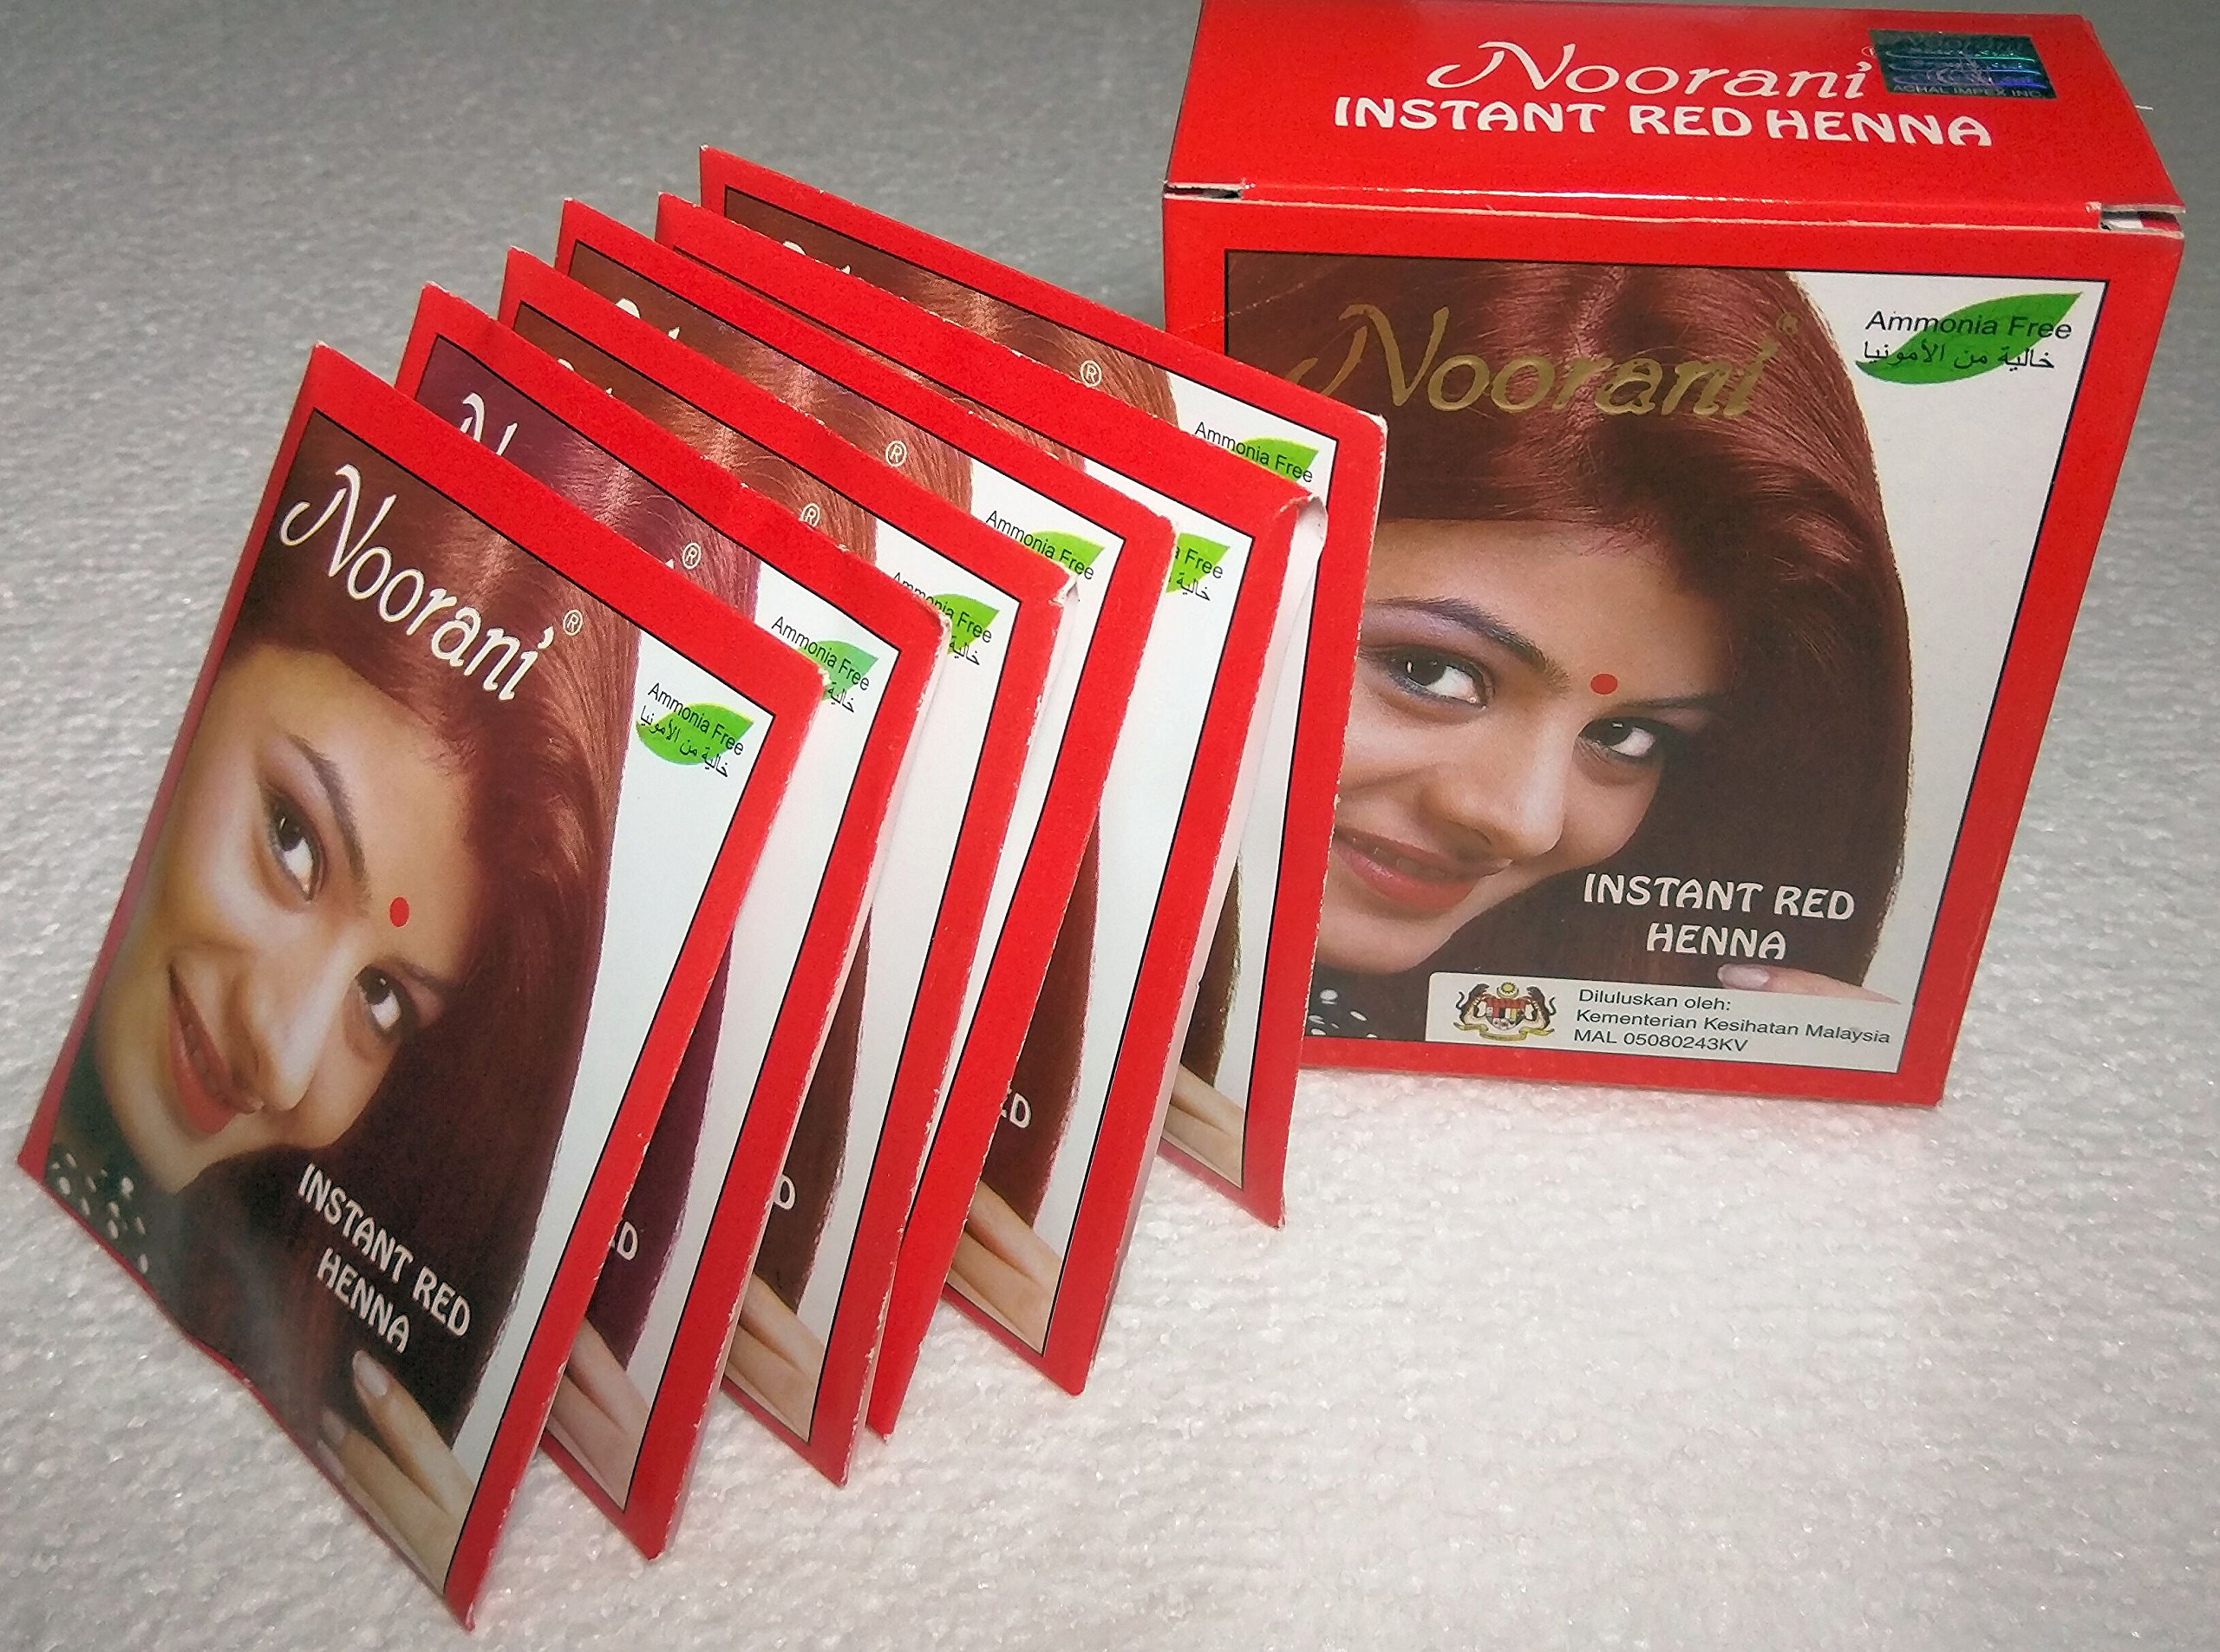 Noorani Instant Red Henna for Hair 6 X 10 Gms (Pack of 10) by Halaljj (Image #1)